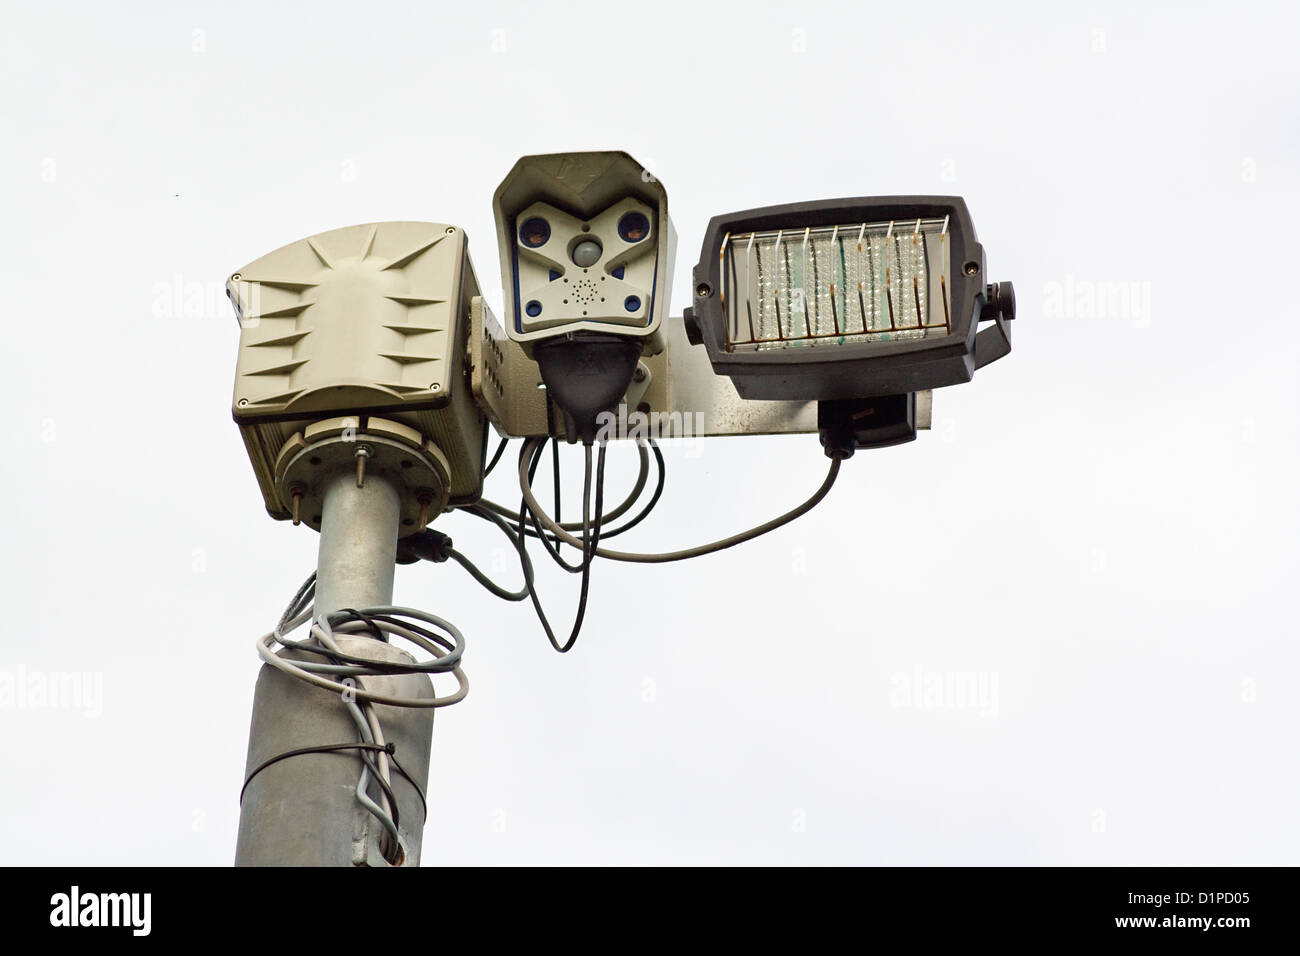 Infra Red closed curcuit television cameras or CCTV a surveillance camera for use at night - Stock Image